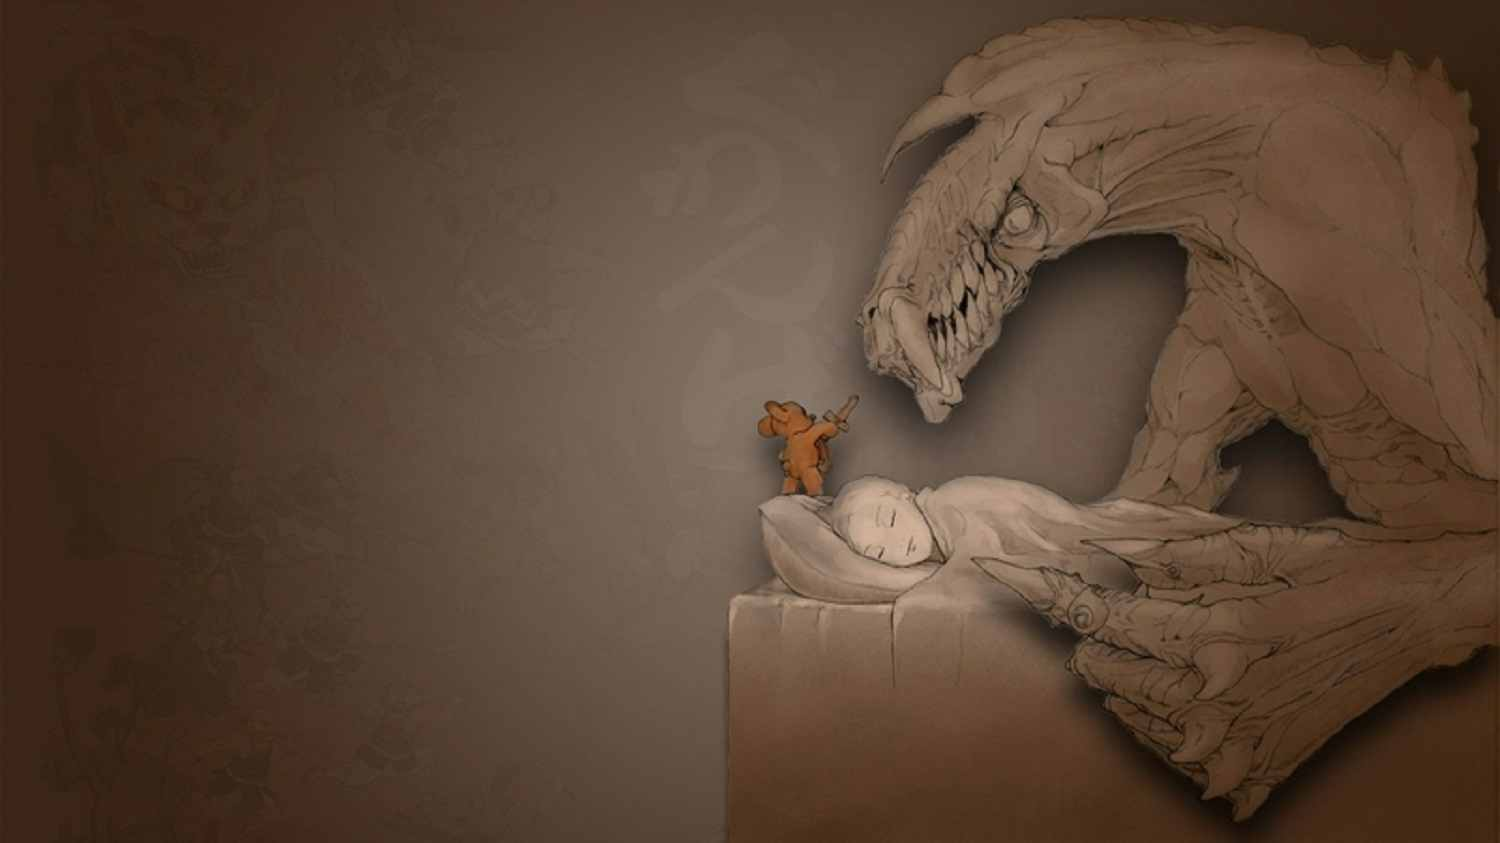 monsters sleeping artwork teddy bears 1920x1080 wallpaper_www.wallmay.com_3